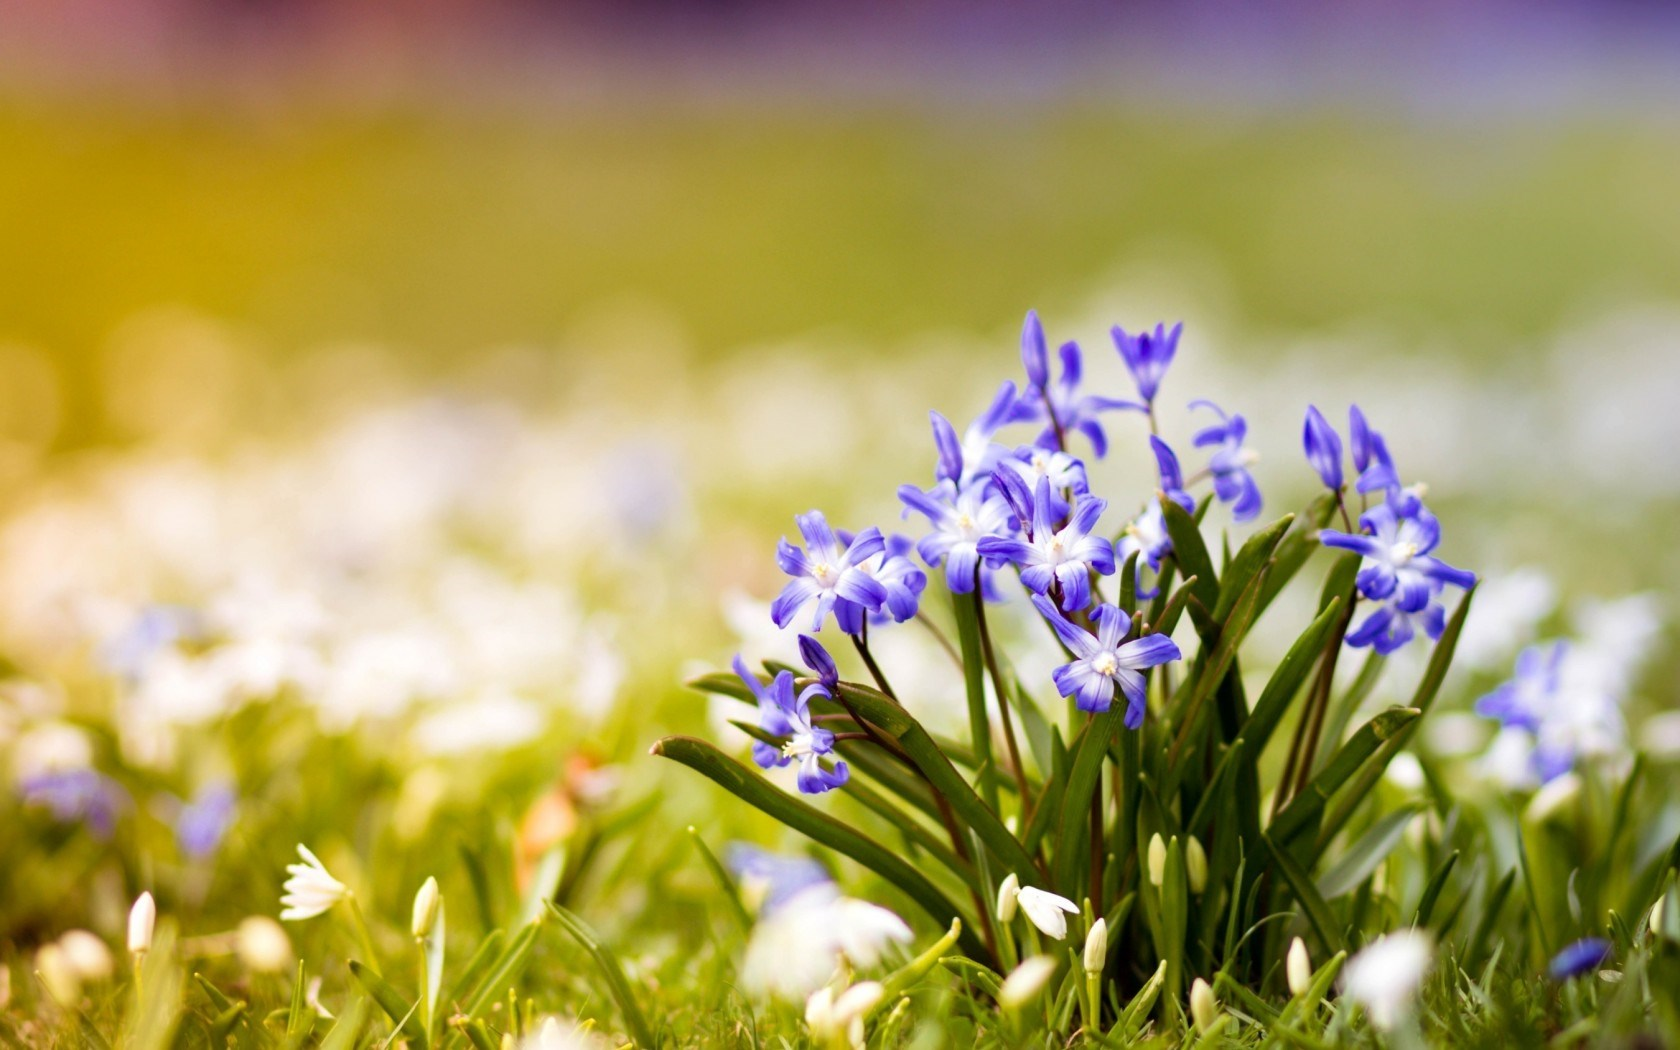 Spring Pic   Wallpaper High Definition High Quality Widescreen 1680x1050